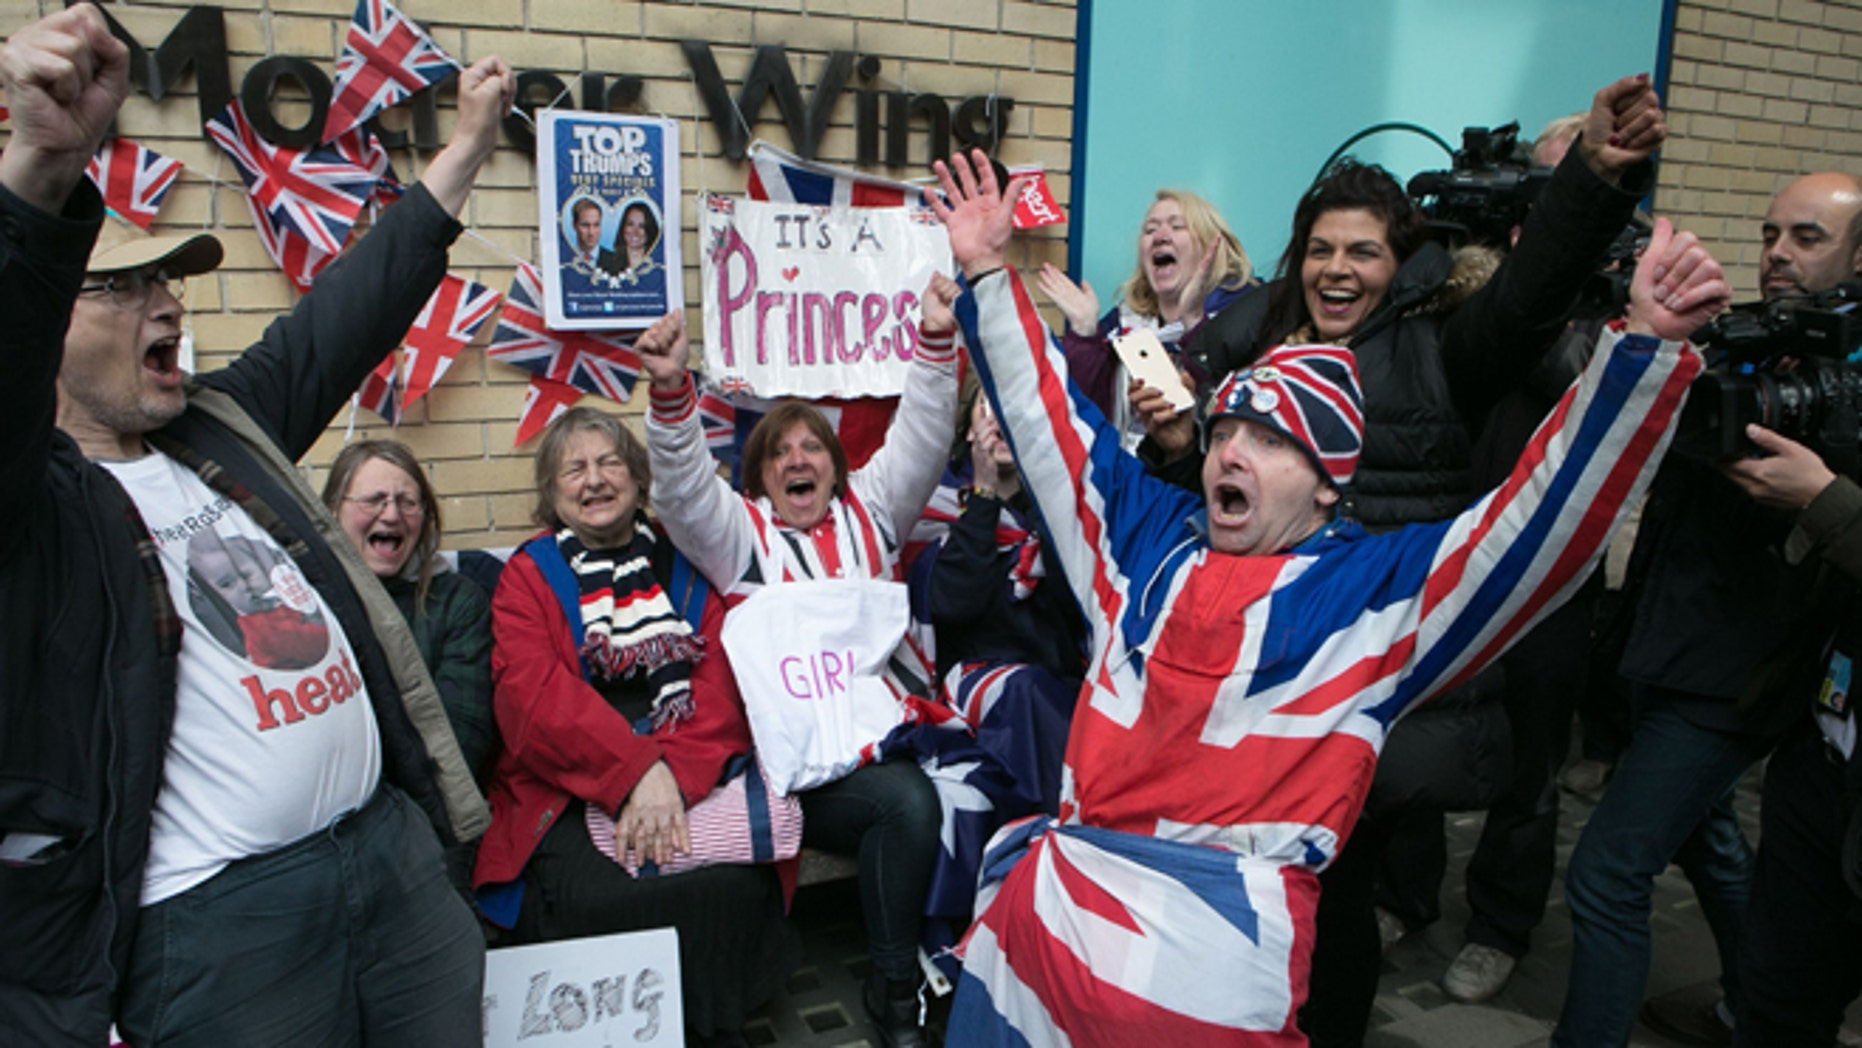 """Royal fans and well wishers react after Kensington Palace announced that Kate, the Duchess of Cambridge, had given birth to a girl, outside the Lindo Wing of St. Mary's Hospital, London, Saturday, May 2, 2015. Kensington Palace said in a brief statement that Prince William's wife """"was safely delivered of a daughter"""" at 8:34 a.m. London time (0734 GMT), less than three hours after she was admitted to central London's St. Mary's Hospital. (Daniel Leal-Olivas/PA via AP) UNITED KINGDOM OUT, NO SALES, NO ARCHIVE"""